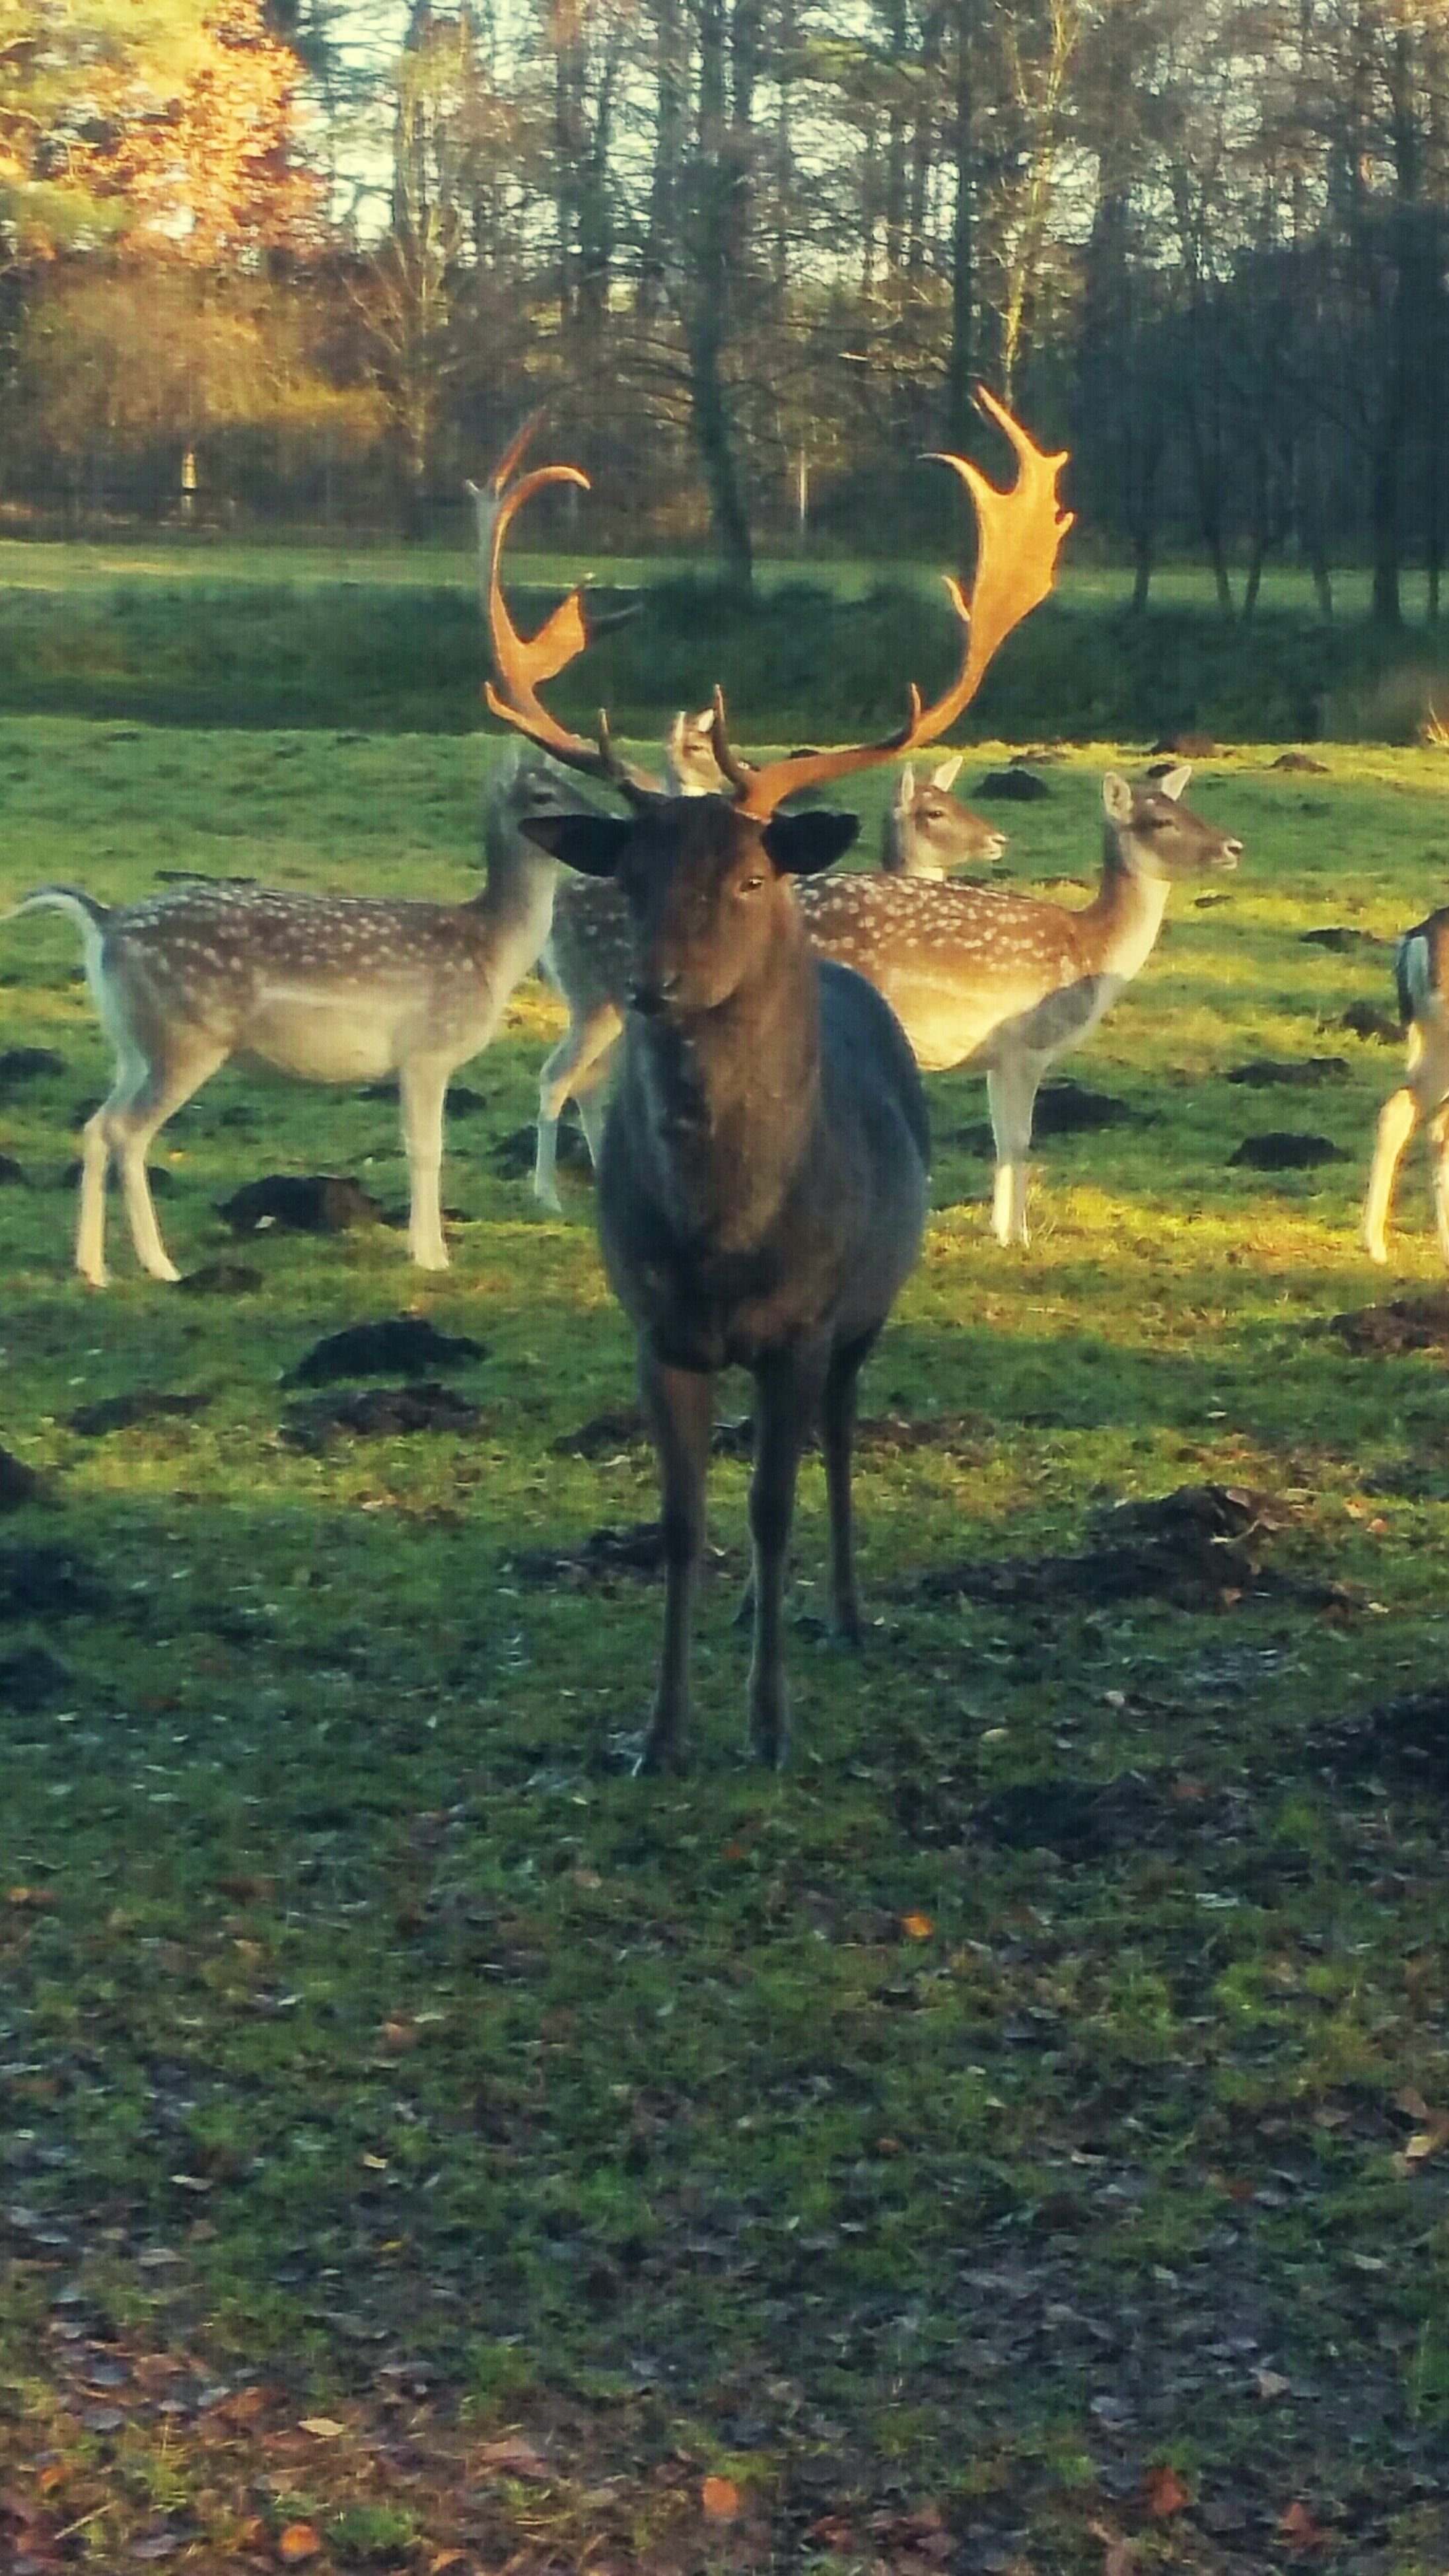 animal themes, mammal, nature, grass, no people, animals in the wild, sunlight, tree, forest, field, full length, day, antler, deer, zoology, outdoors, motion, stag